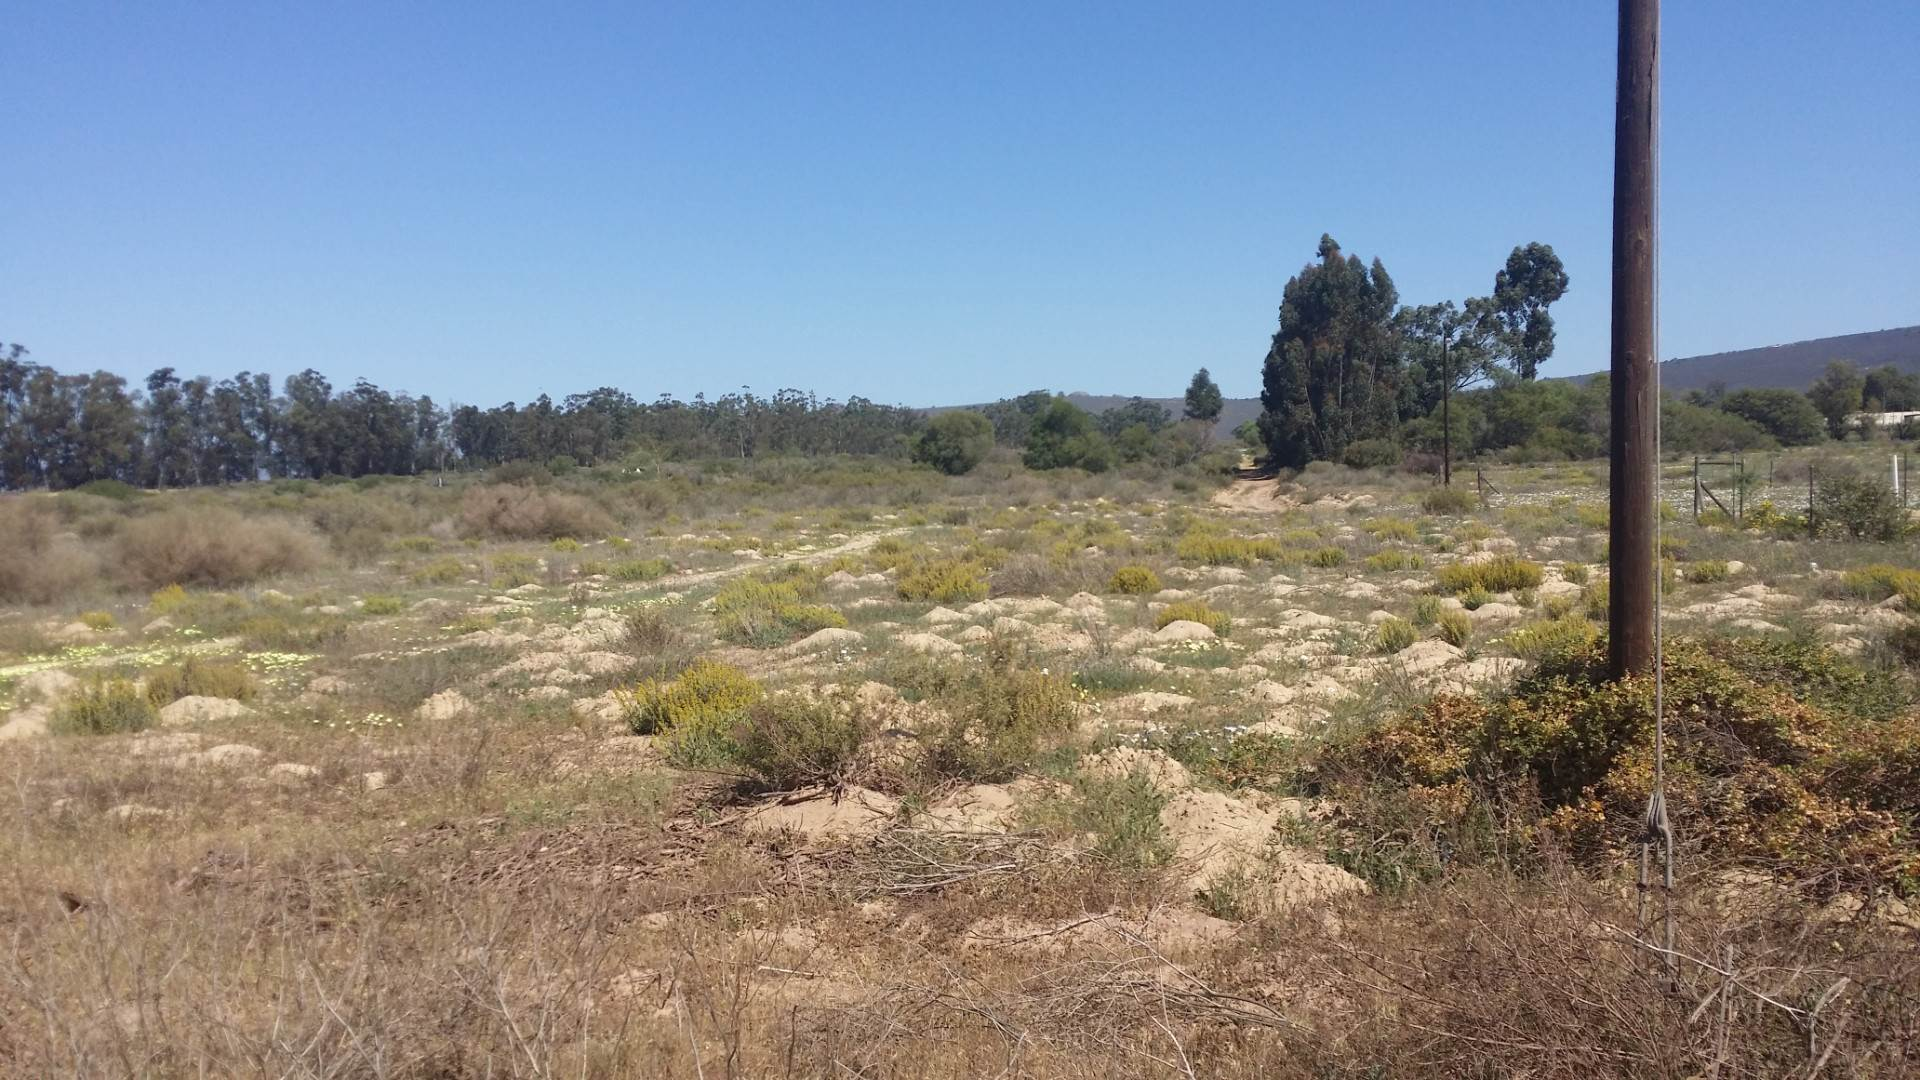 Vacant Land Residential For Sale In Redelinghuys